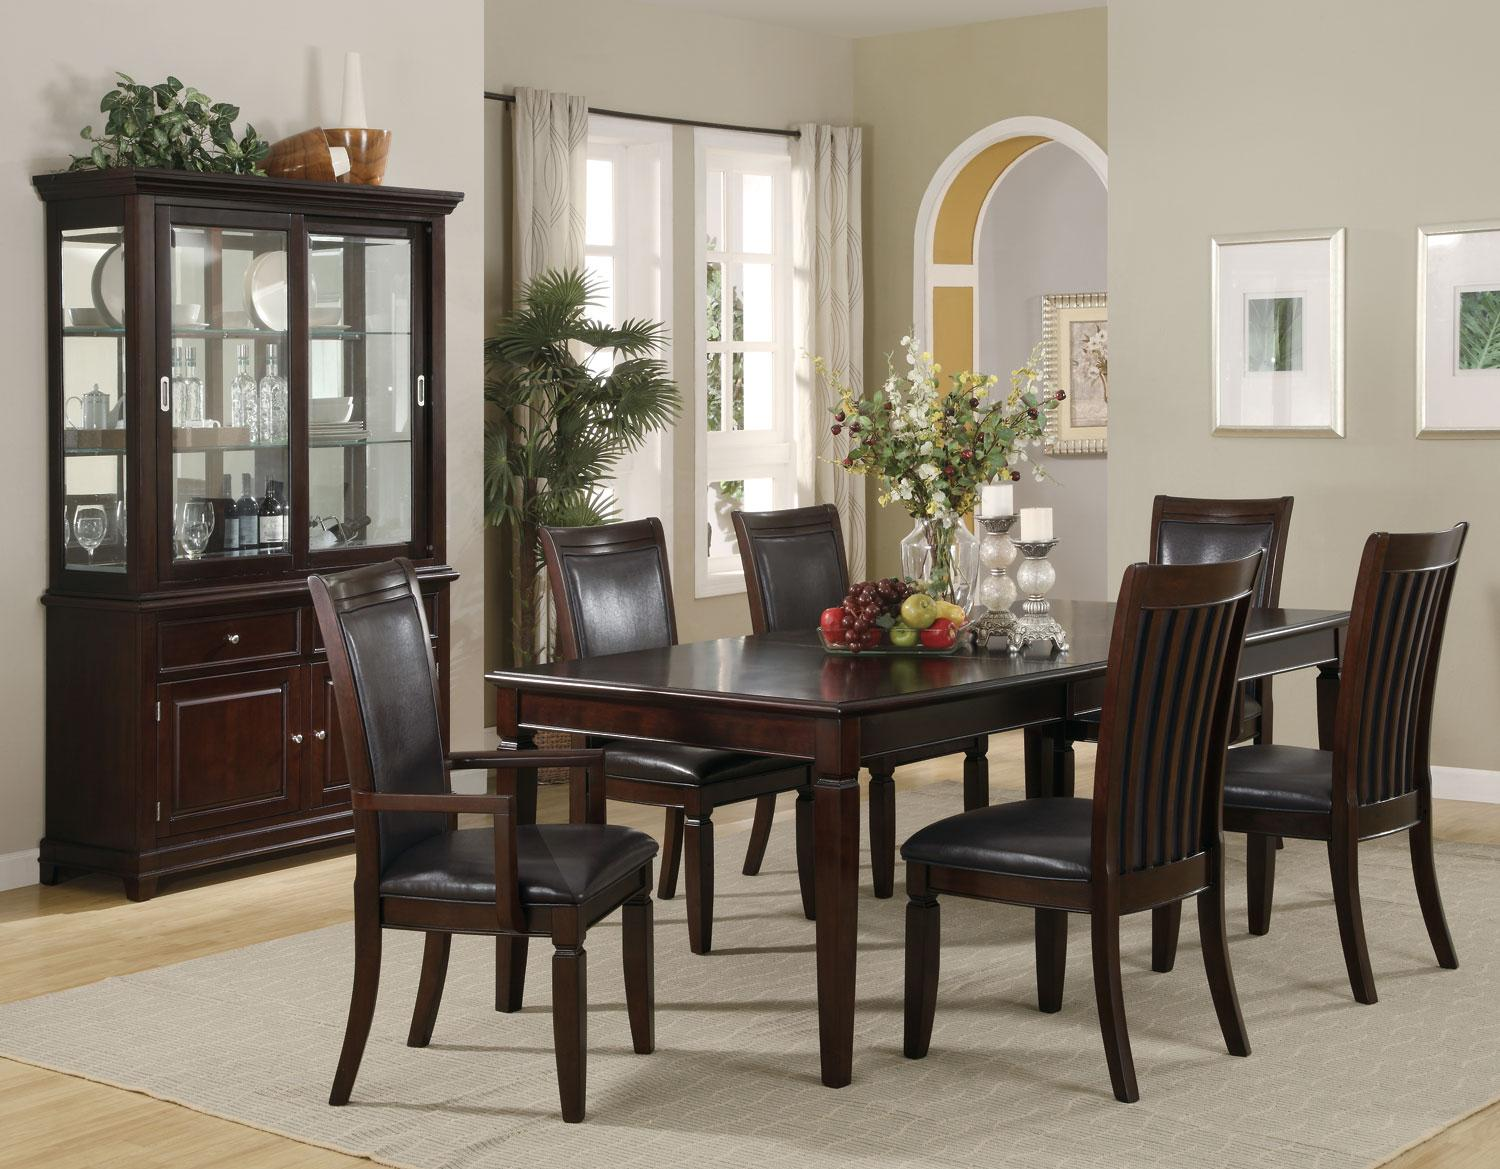 Affordable Casual Dining Sets| Online Dining Room Tables| Dining